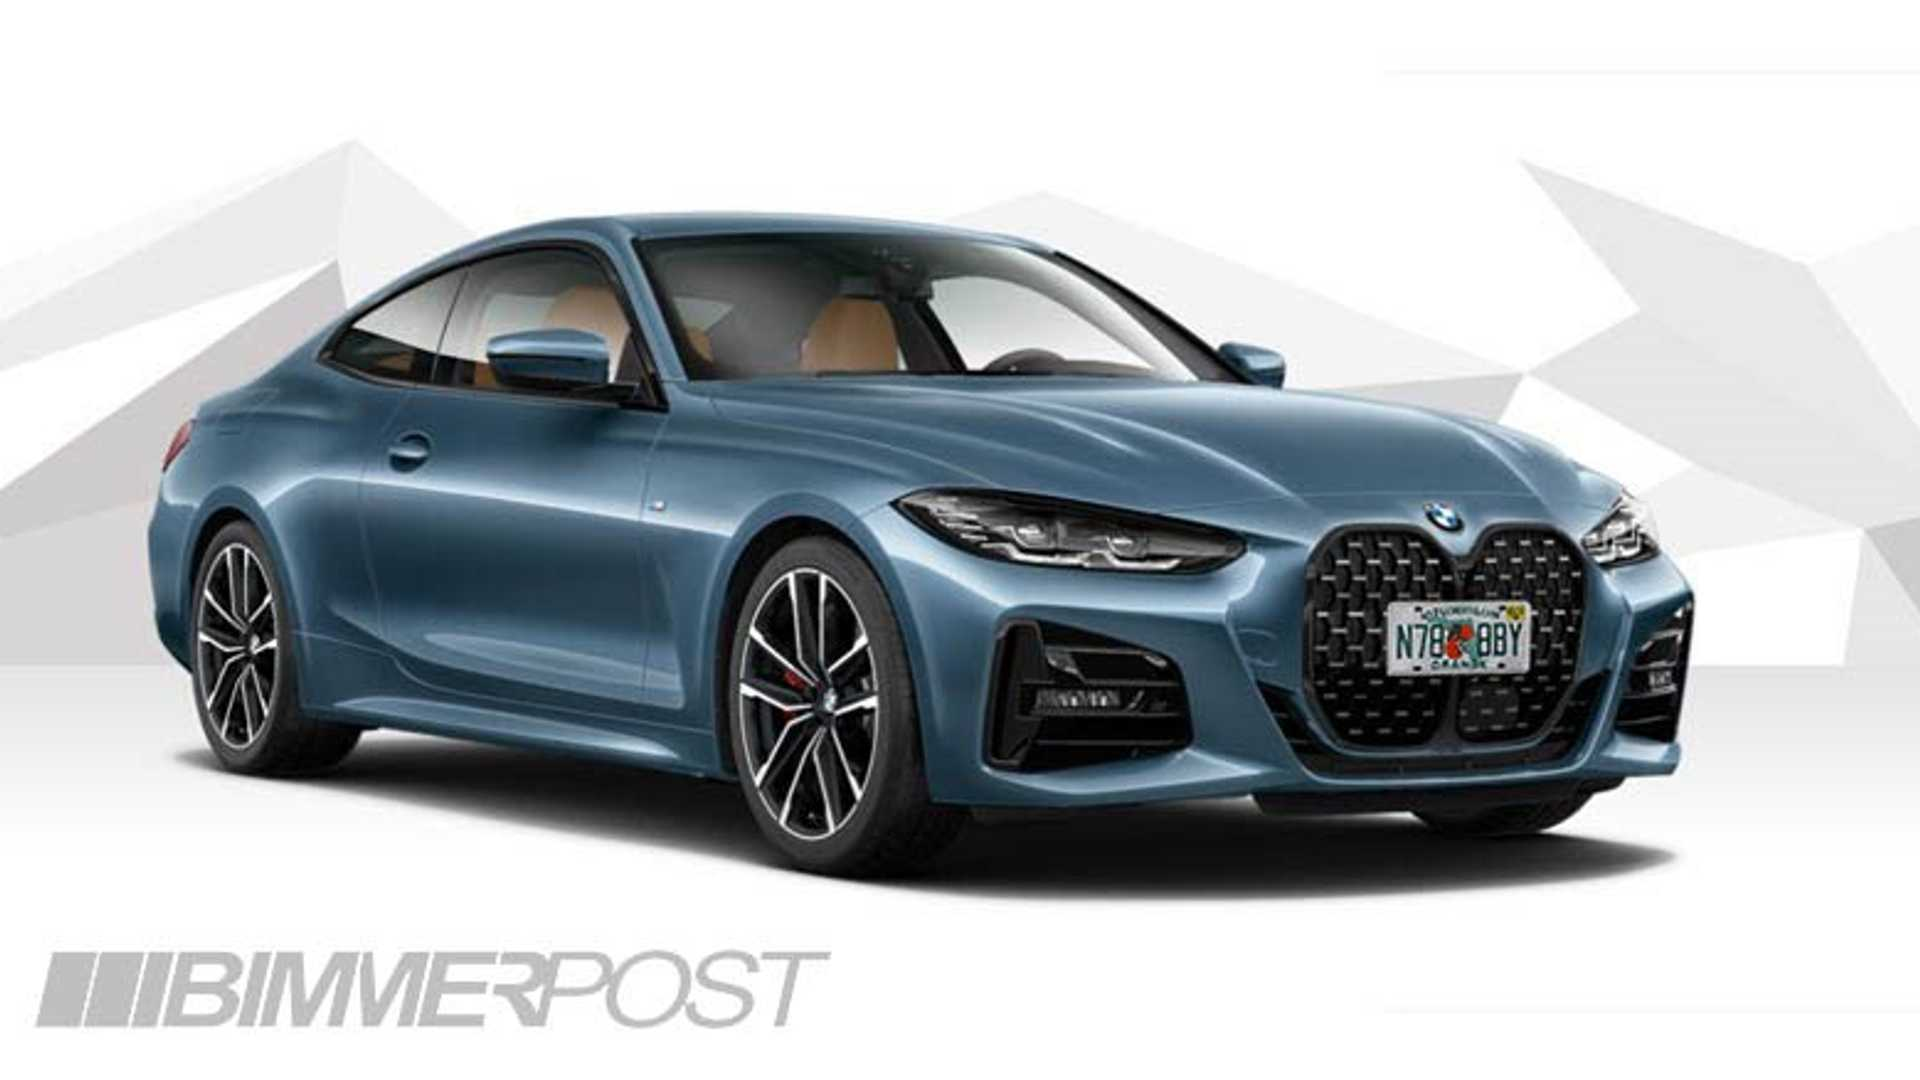 2021 Bmw 4 Series Coupe Without Front License Plate Better Or Worse